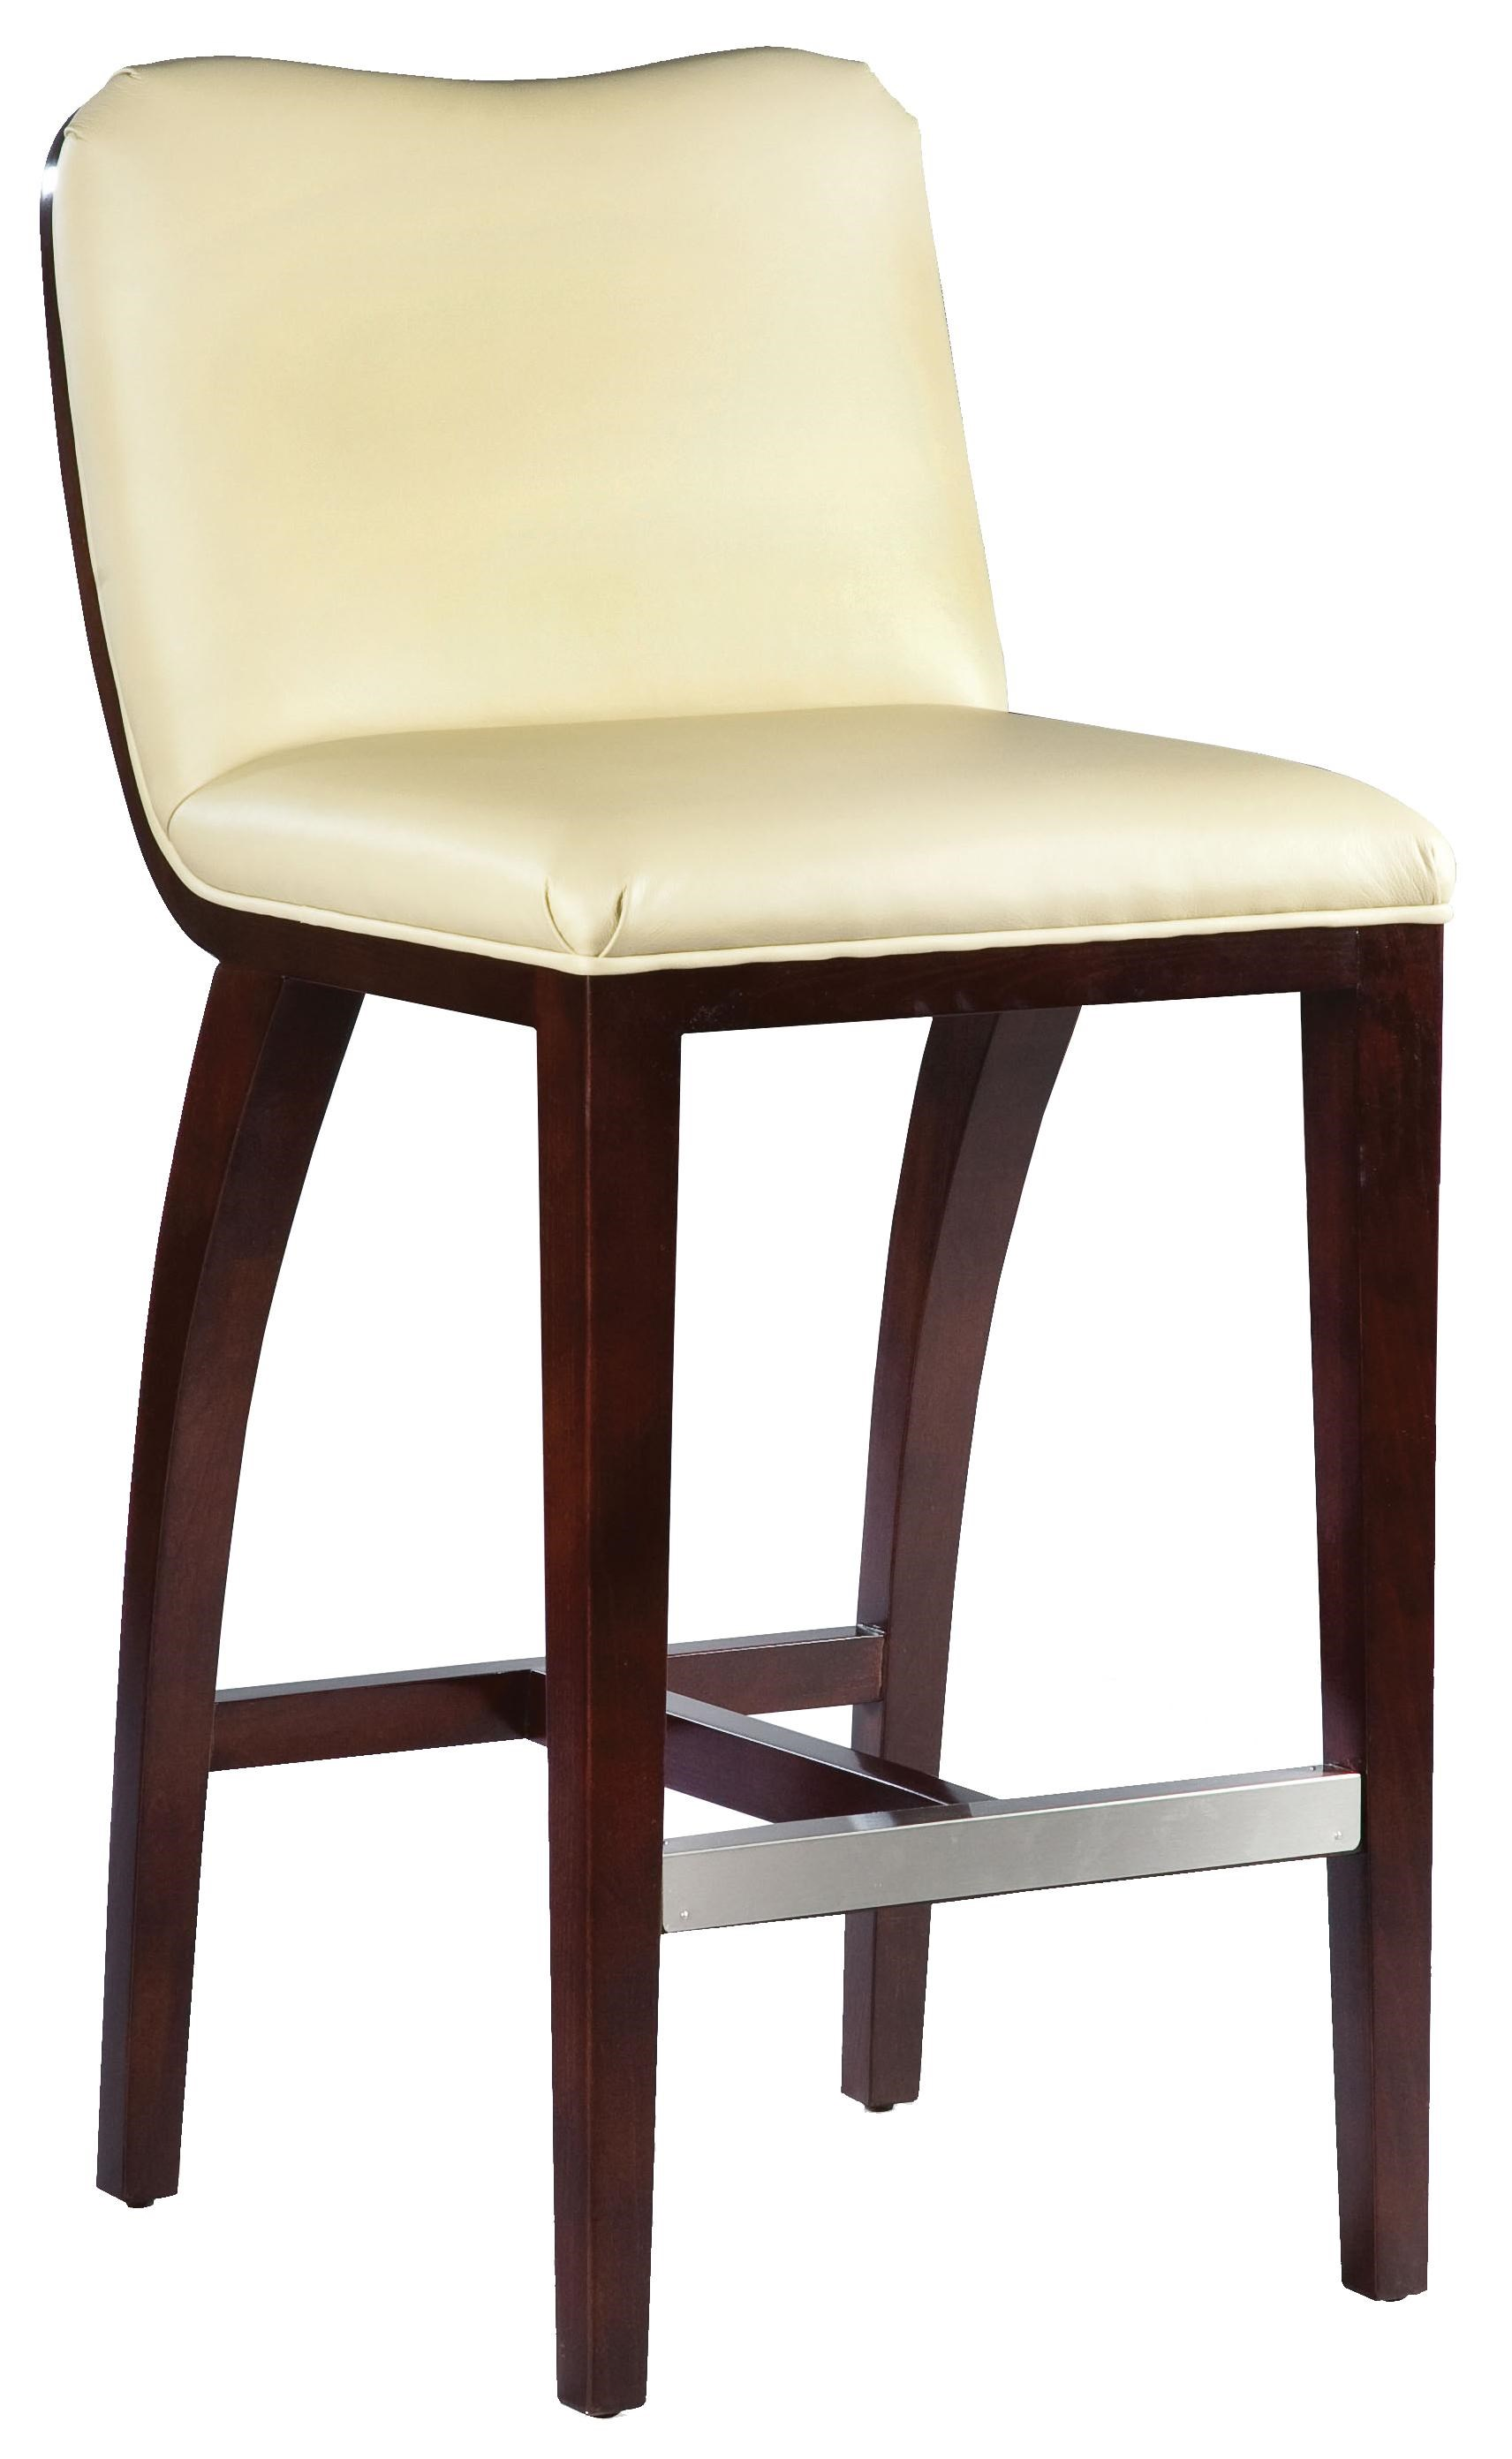 Fairfield Barstools High End Bar Stool With Wood Accents ...